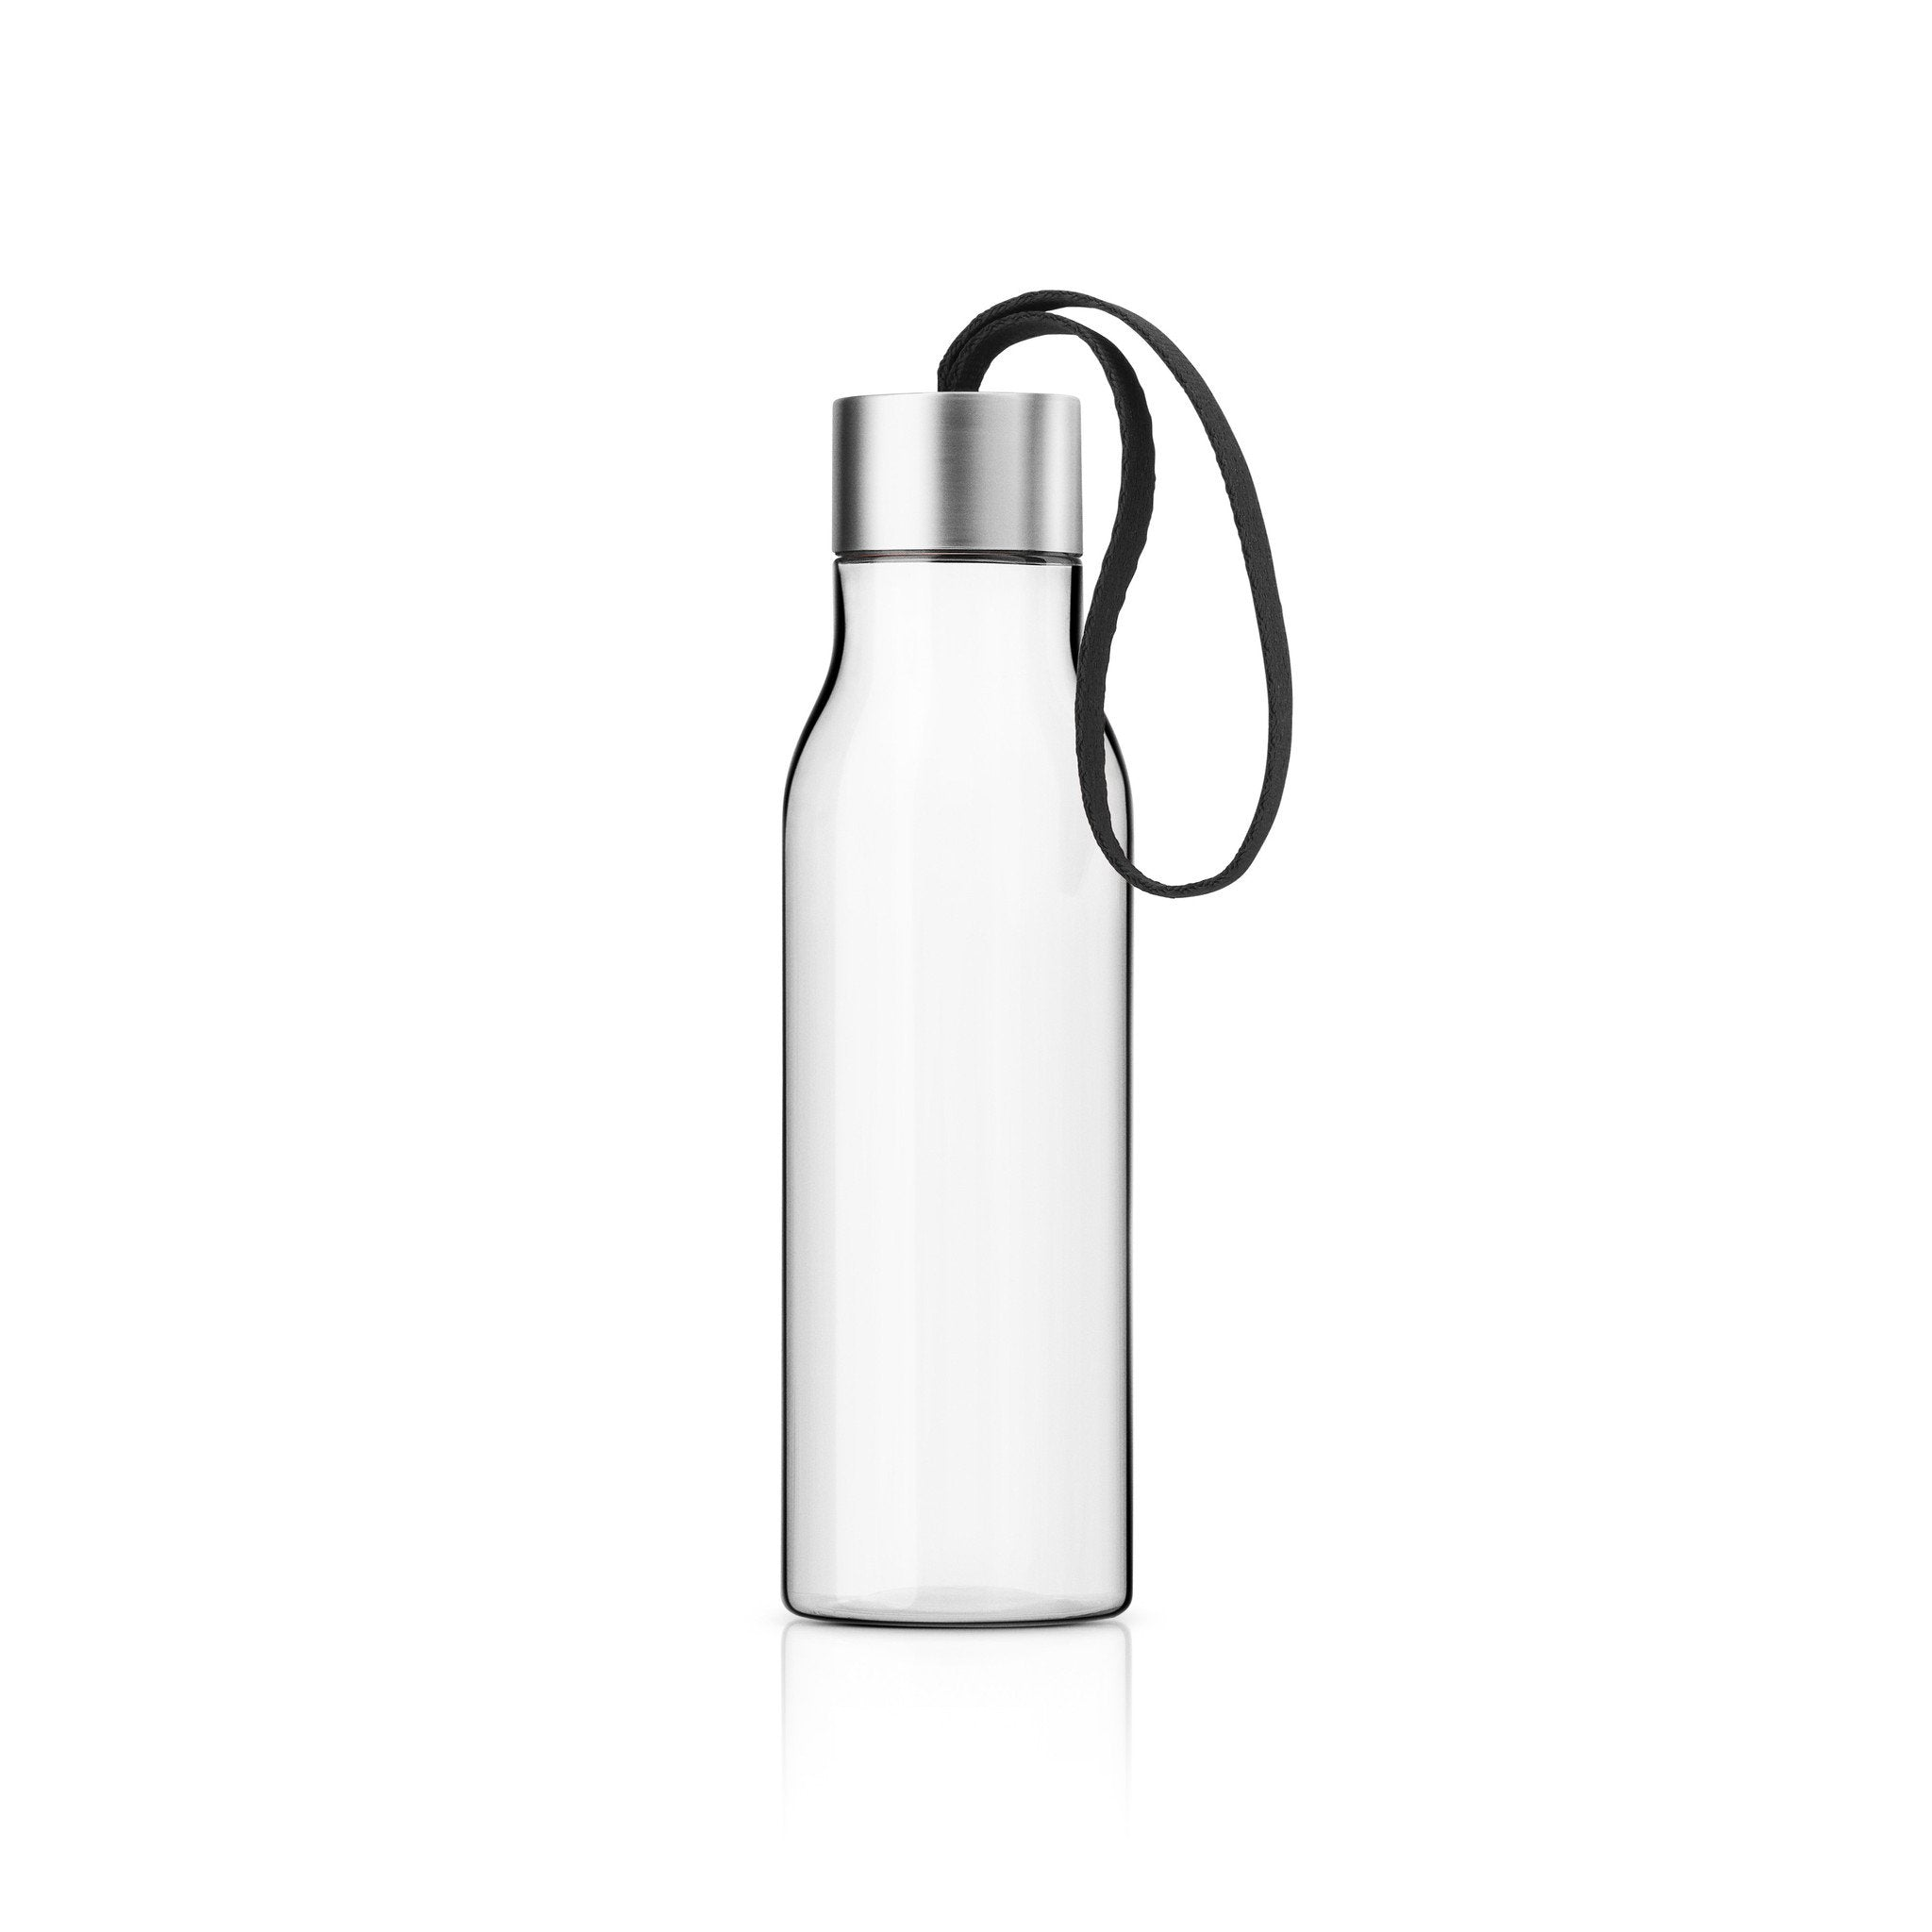 Drinking bottle - Water Bottles - Eva Solo - Naiise